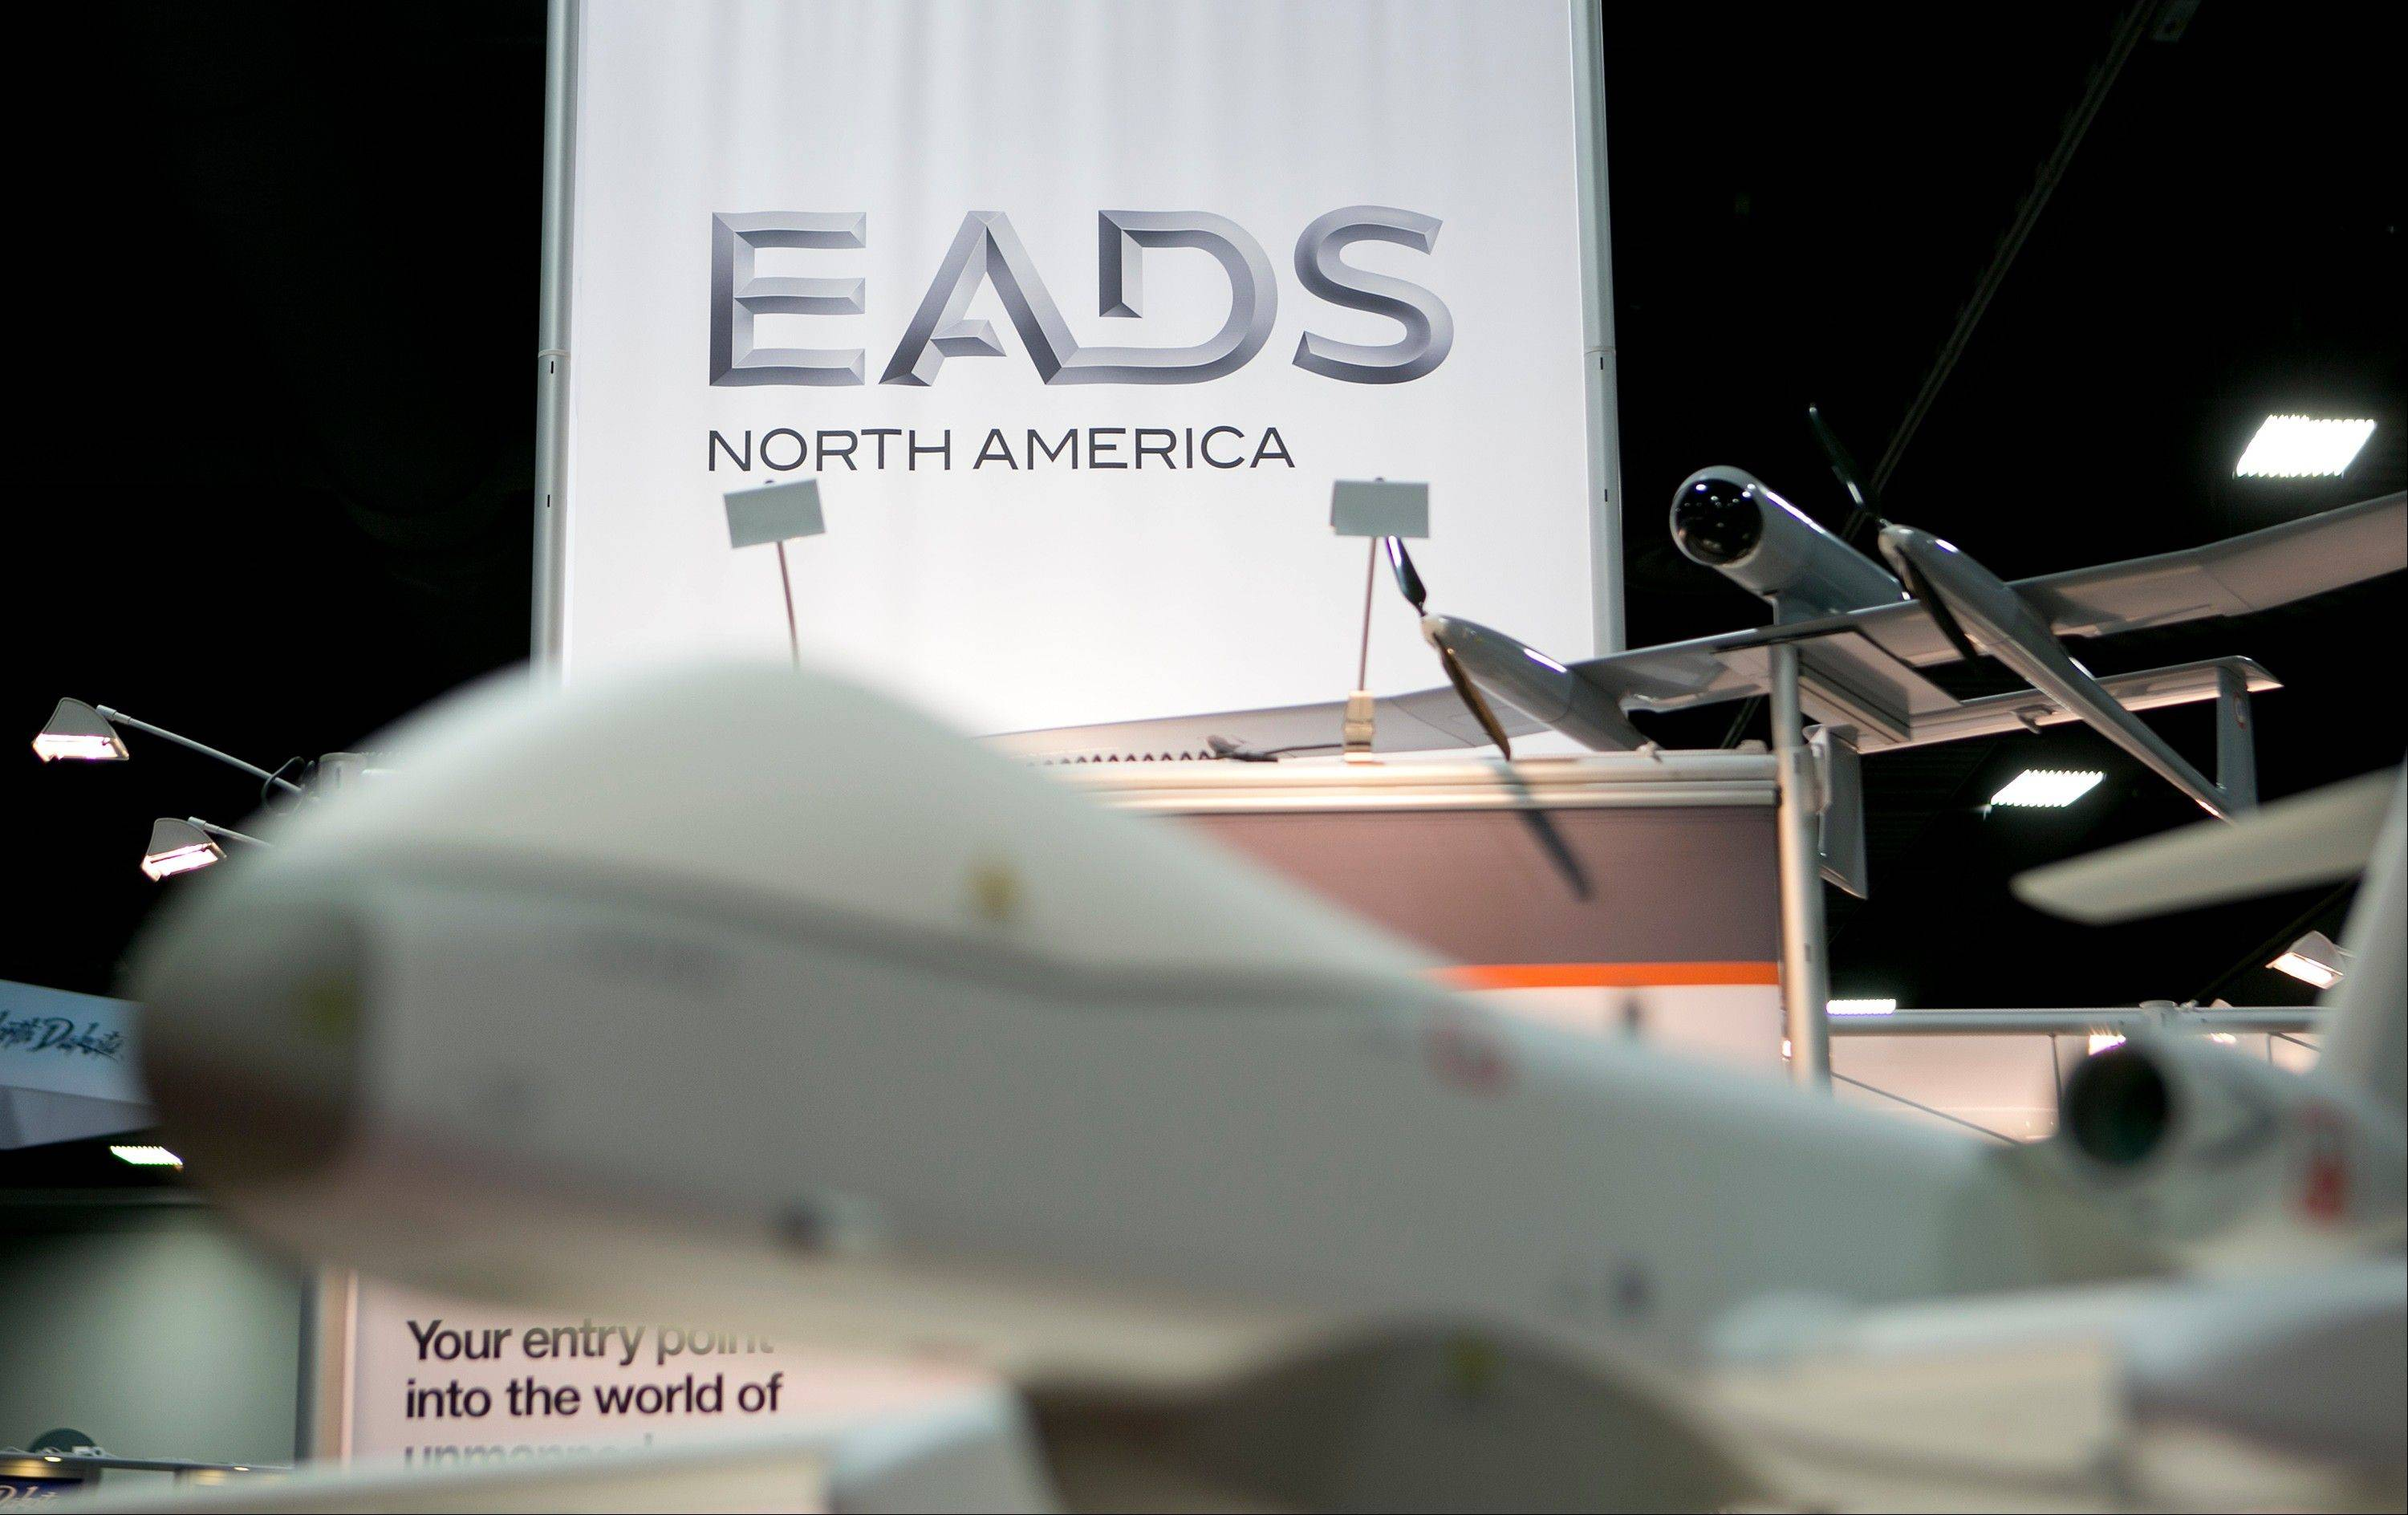 The European Aeronautic, Defence & Space Co. North America (EADS) logo is seen past a Cassidian Ltd., a unit of EADS, Future MALE unmanned aircraft system (UAS) on the exhibition floor at the Association for Unmanned Vehicle Systems International (AUVSI) unmanned systems conference in Washington. AUVSI is the world�s largest nonprofit organization devoted exclusively to advancing the unmanned systems and robotics community.